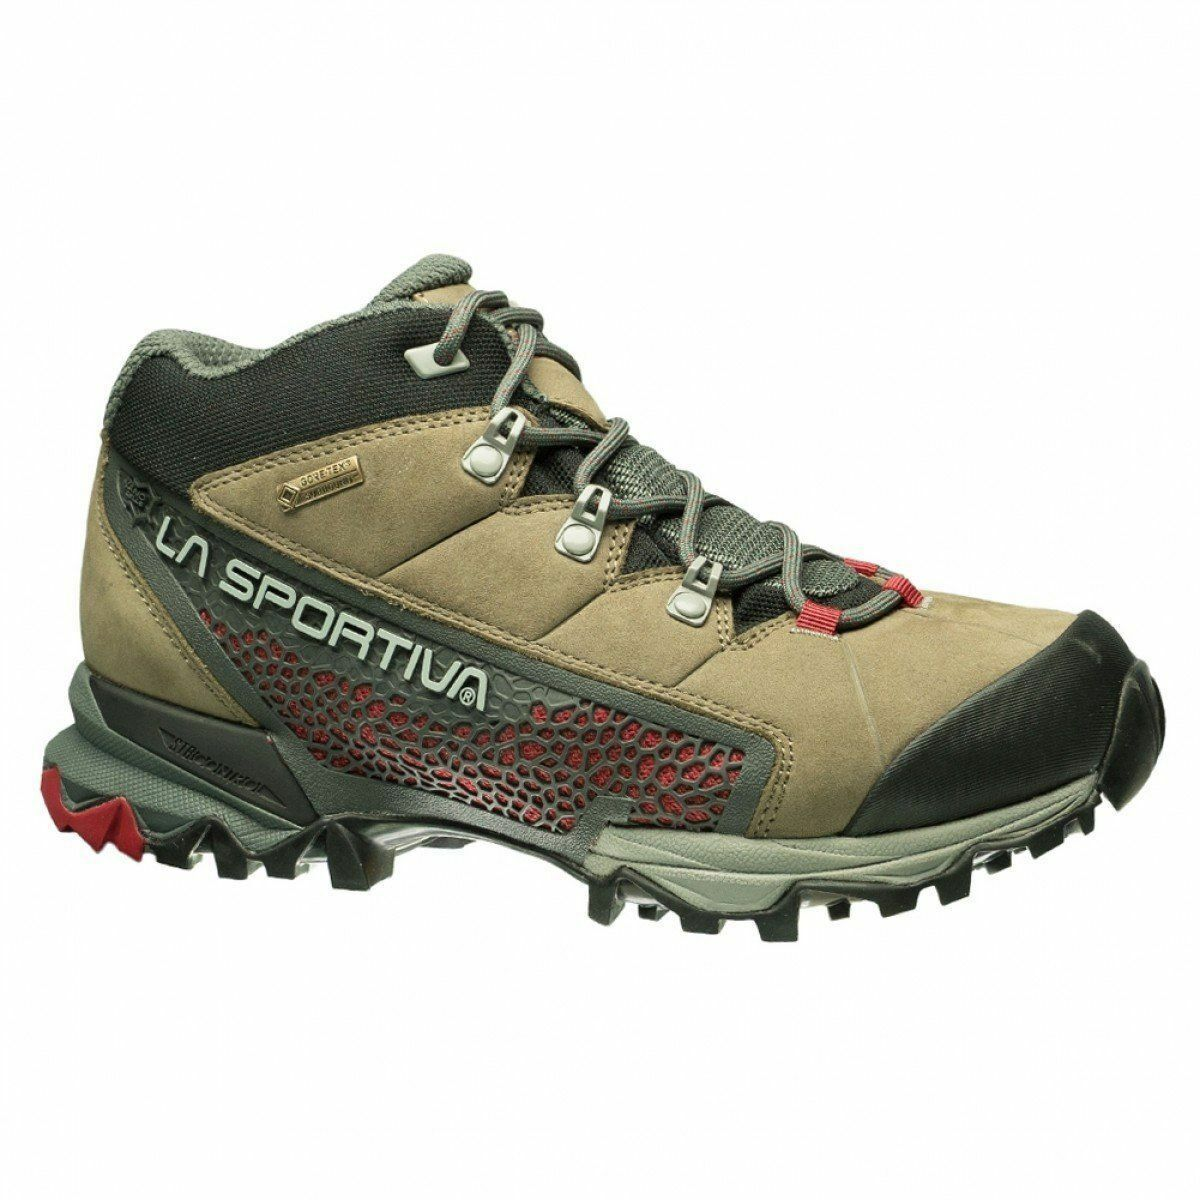 65% OFF RETAIL La Sportiva  Genesis Low GTX Women's GORE-TEX Hiking shoes Boot  come to choose your own sports style